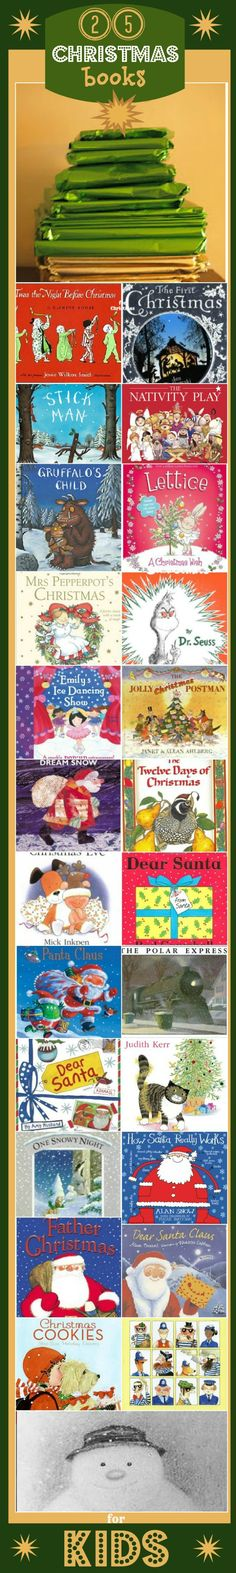 25 CHRISTMAS books for kids. We do this -  open one book each night to read to the kids. Fun holiday tradition